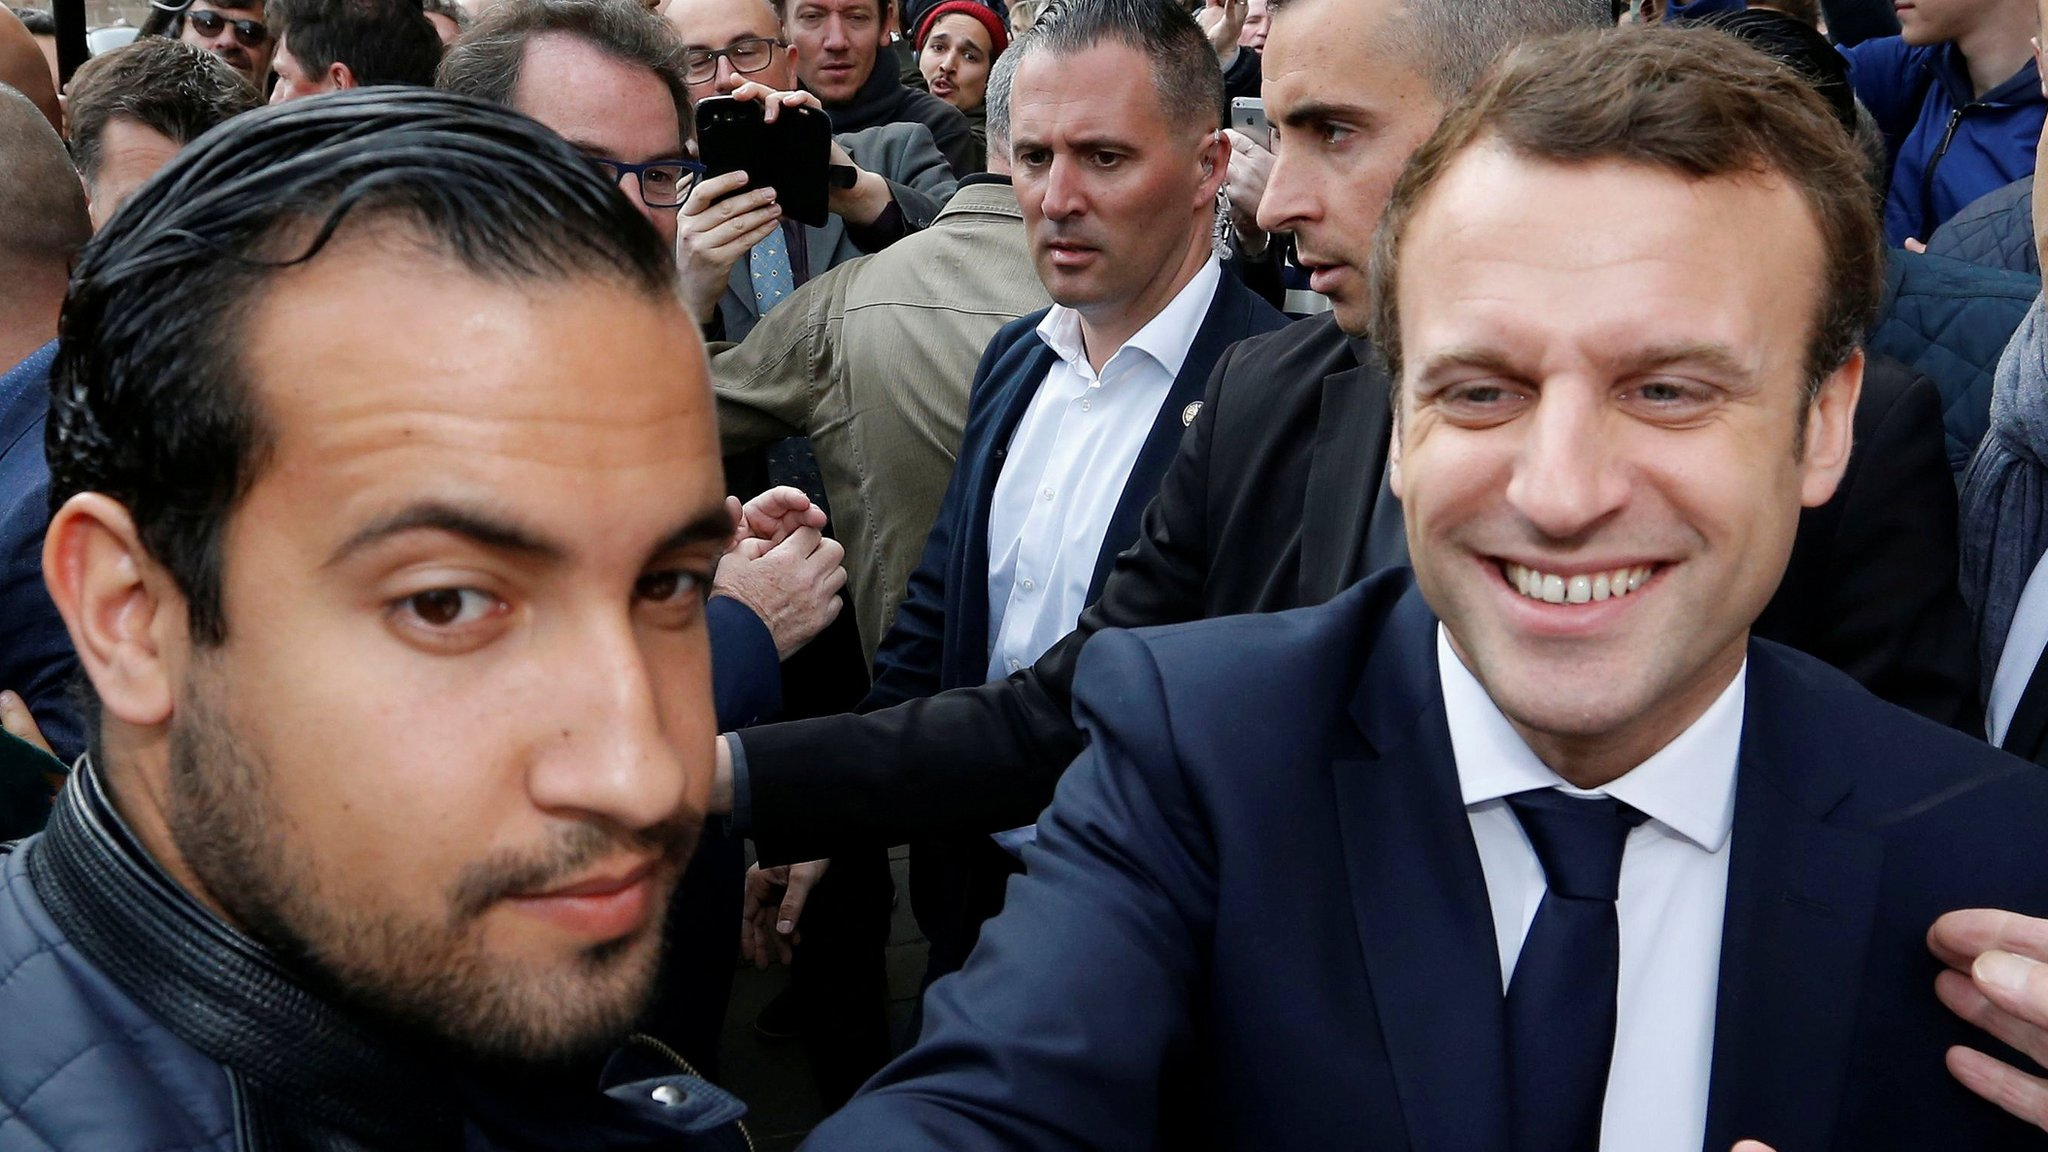 Macron aide Alexandre Benalla charged after protesters beaten